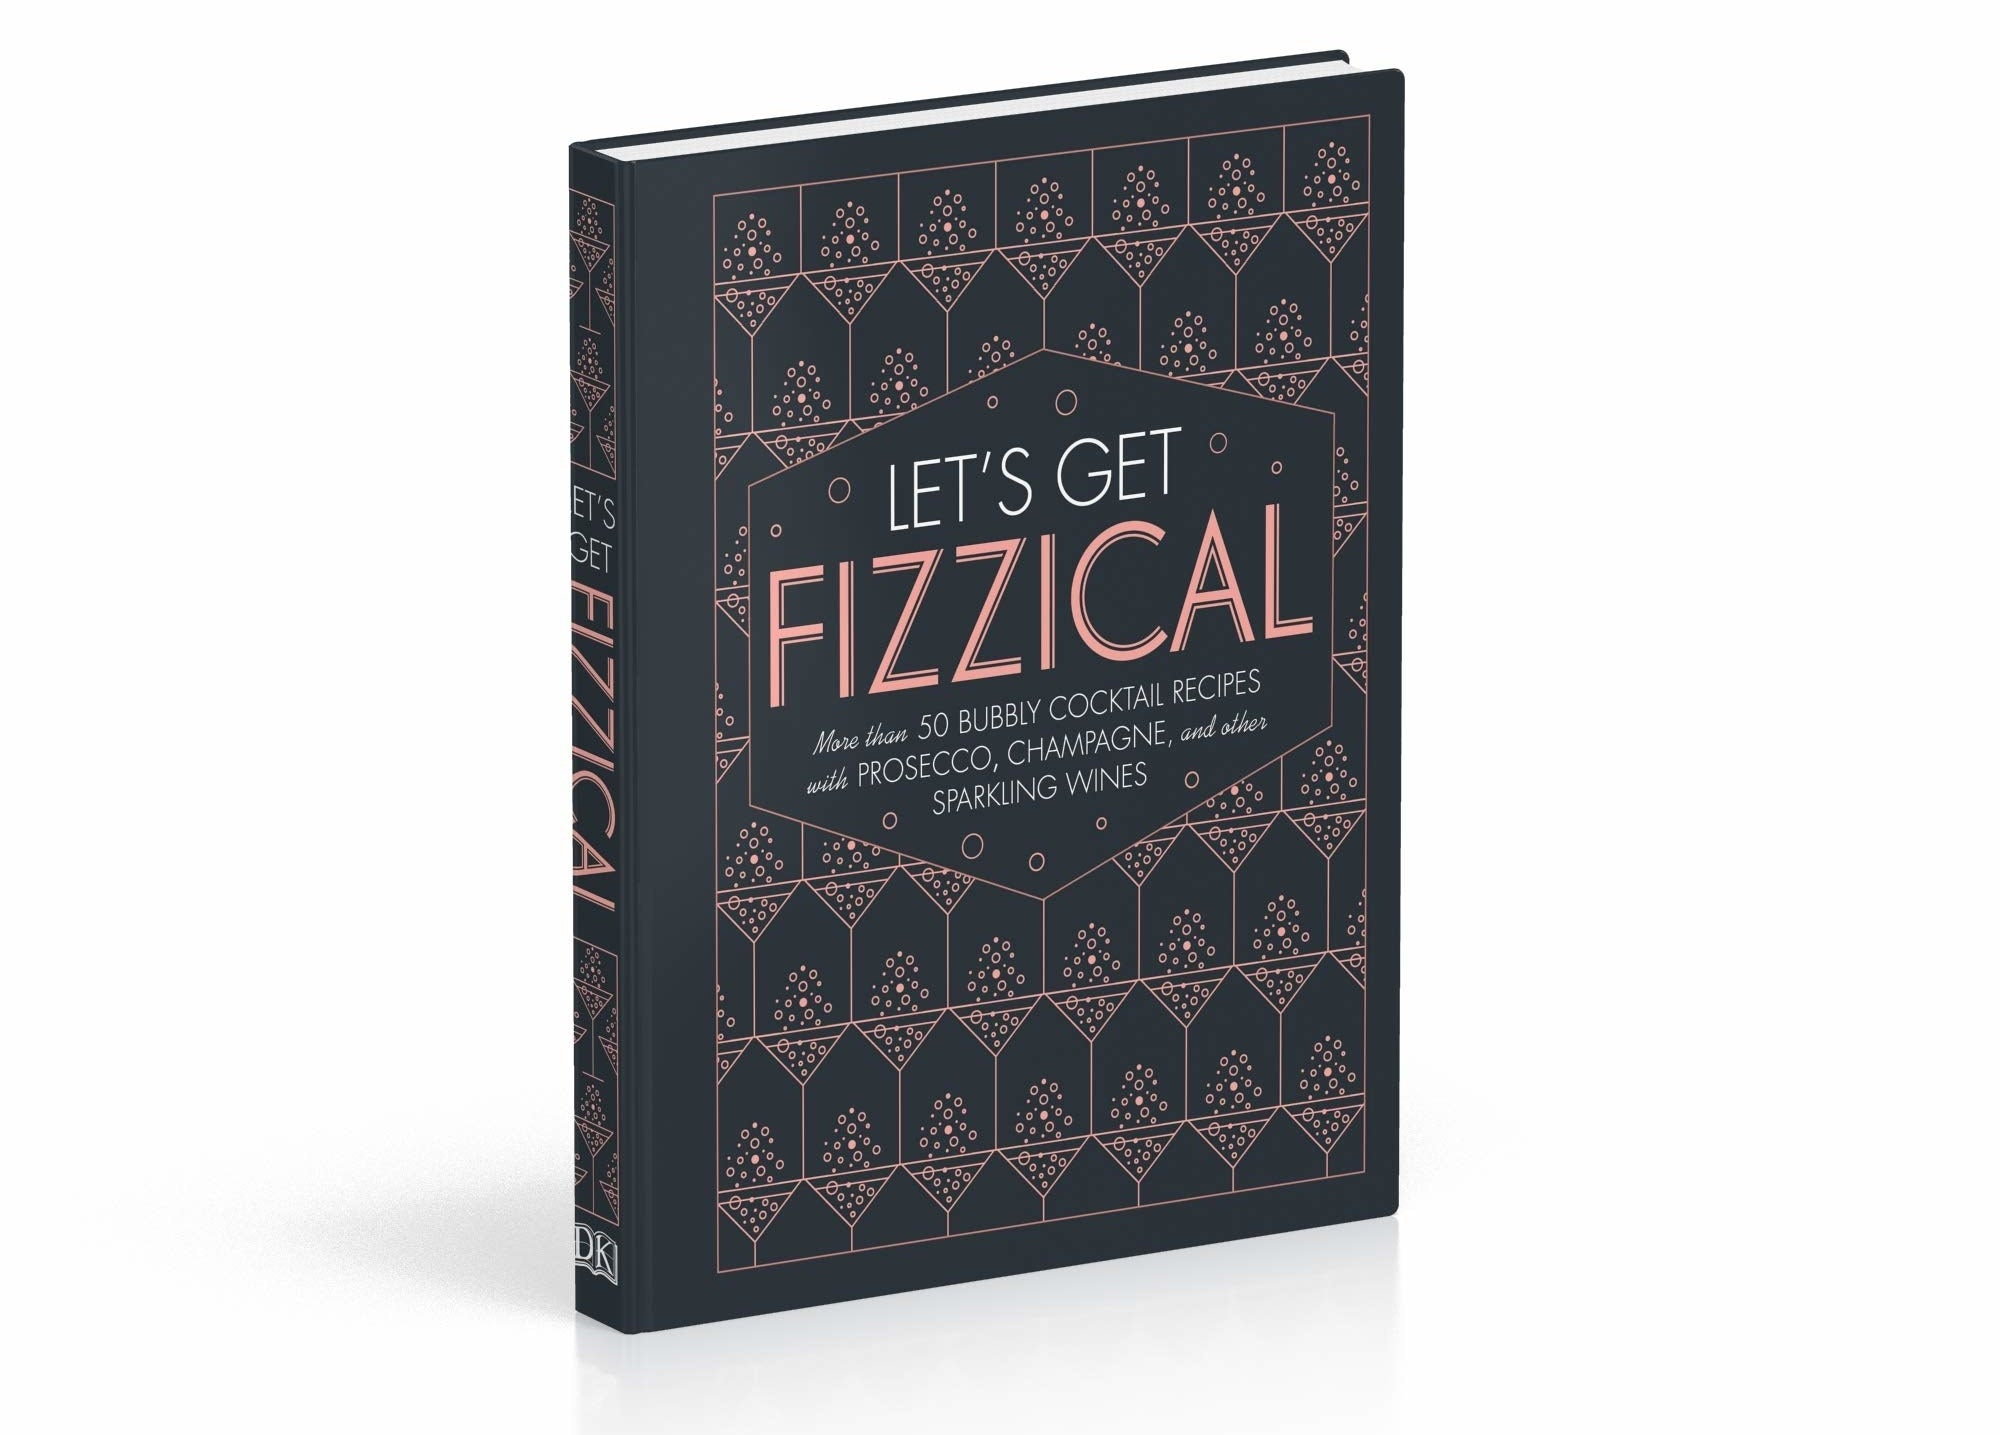 A copy of Let's Get Fizzical.